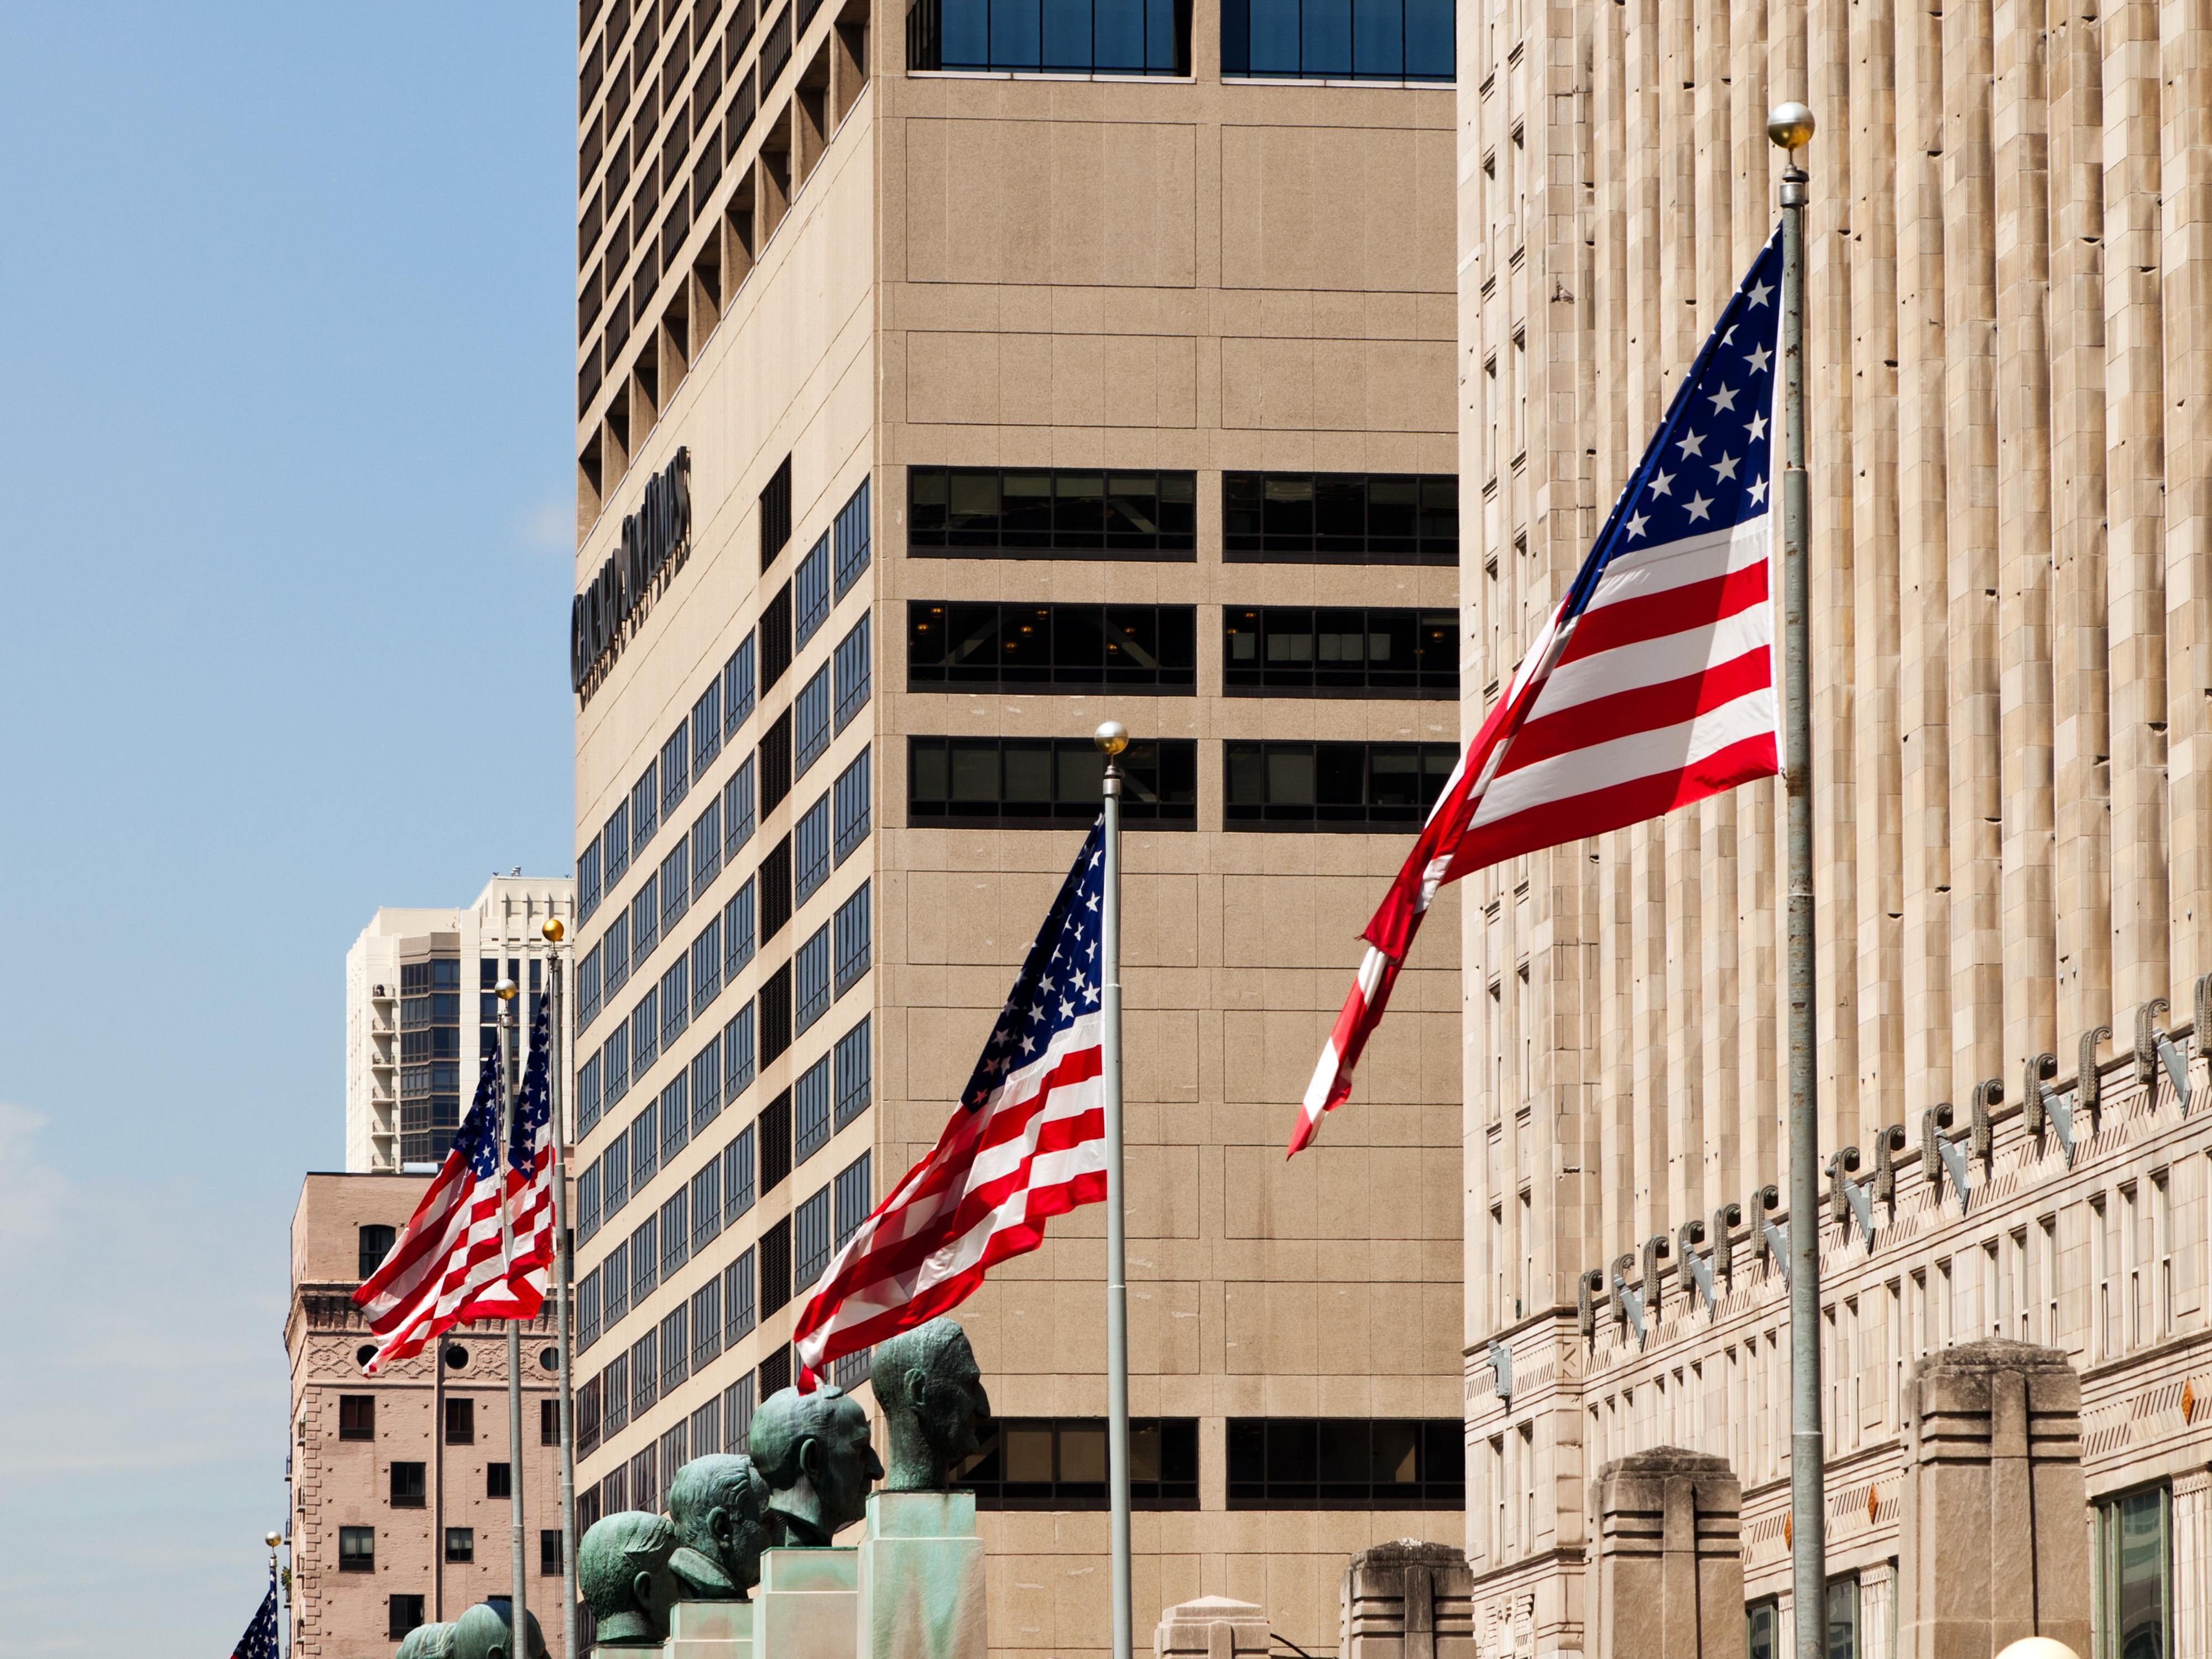 The Holiday Inn Mart Plaza is Located Next to the Merchandise Mart